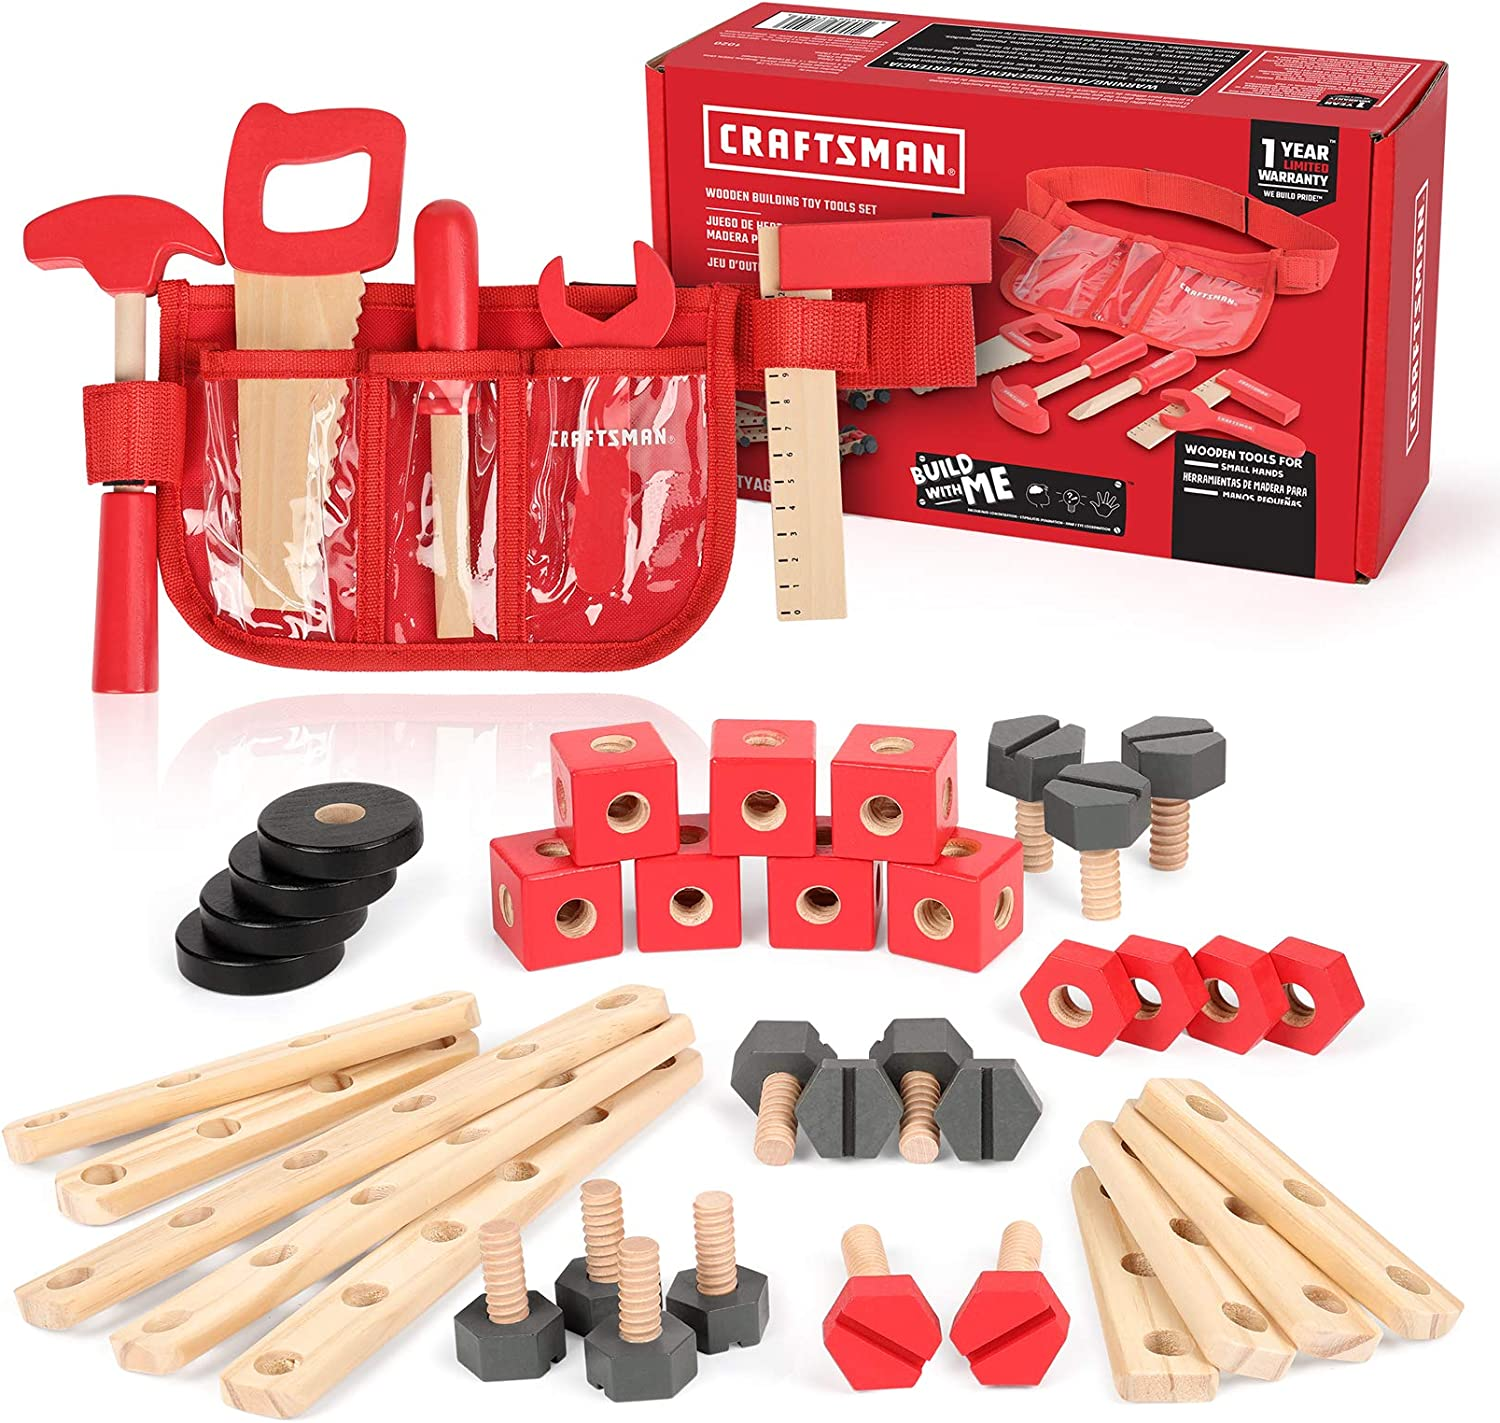 Craftsman Wooden Building Toy Tools Set, Building Toy Set Creative&Educational Construction Toy, Great Gift for Toddlers 3+